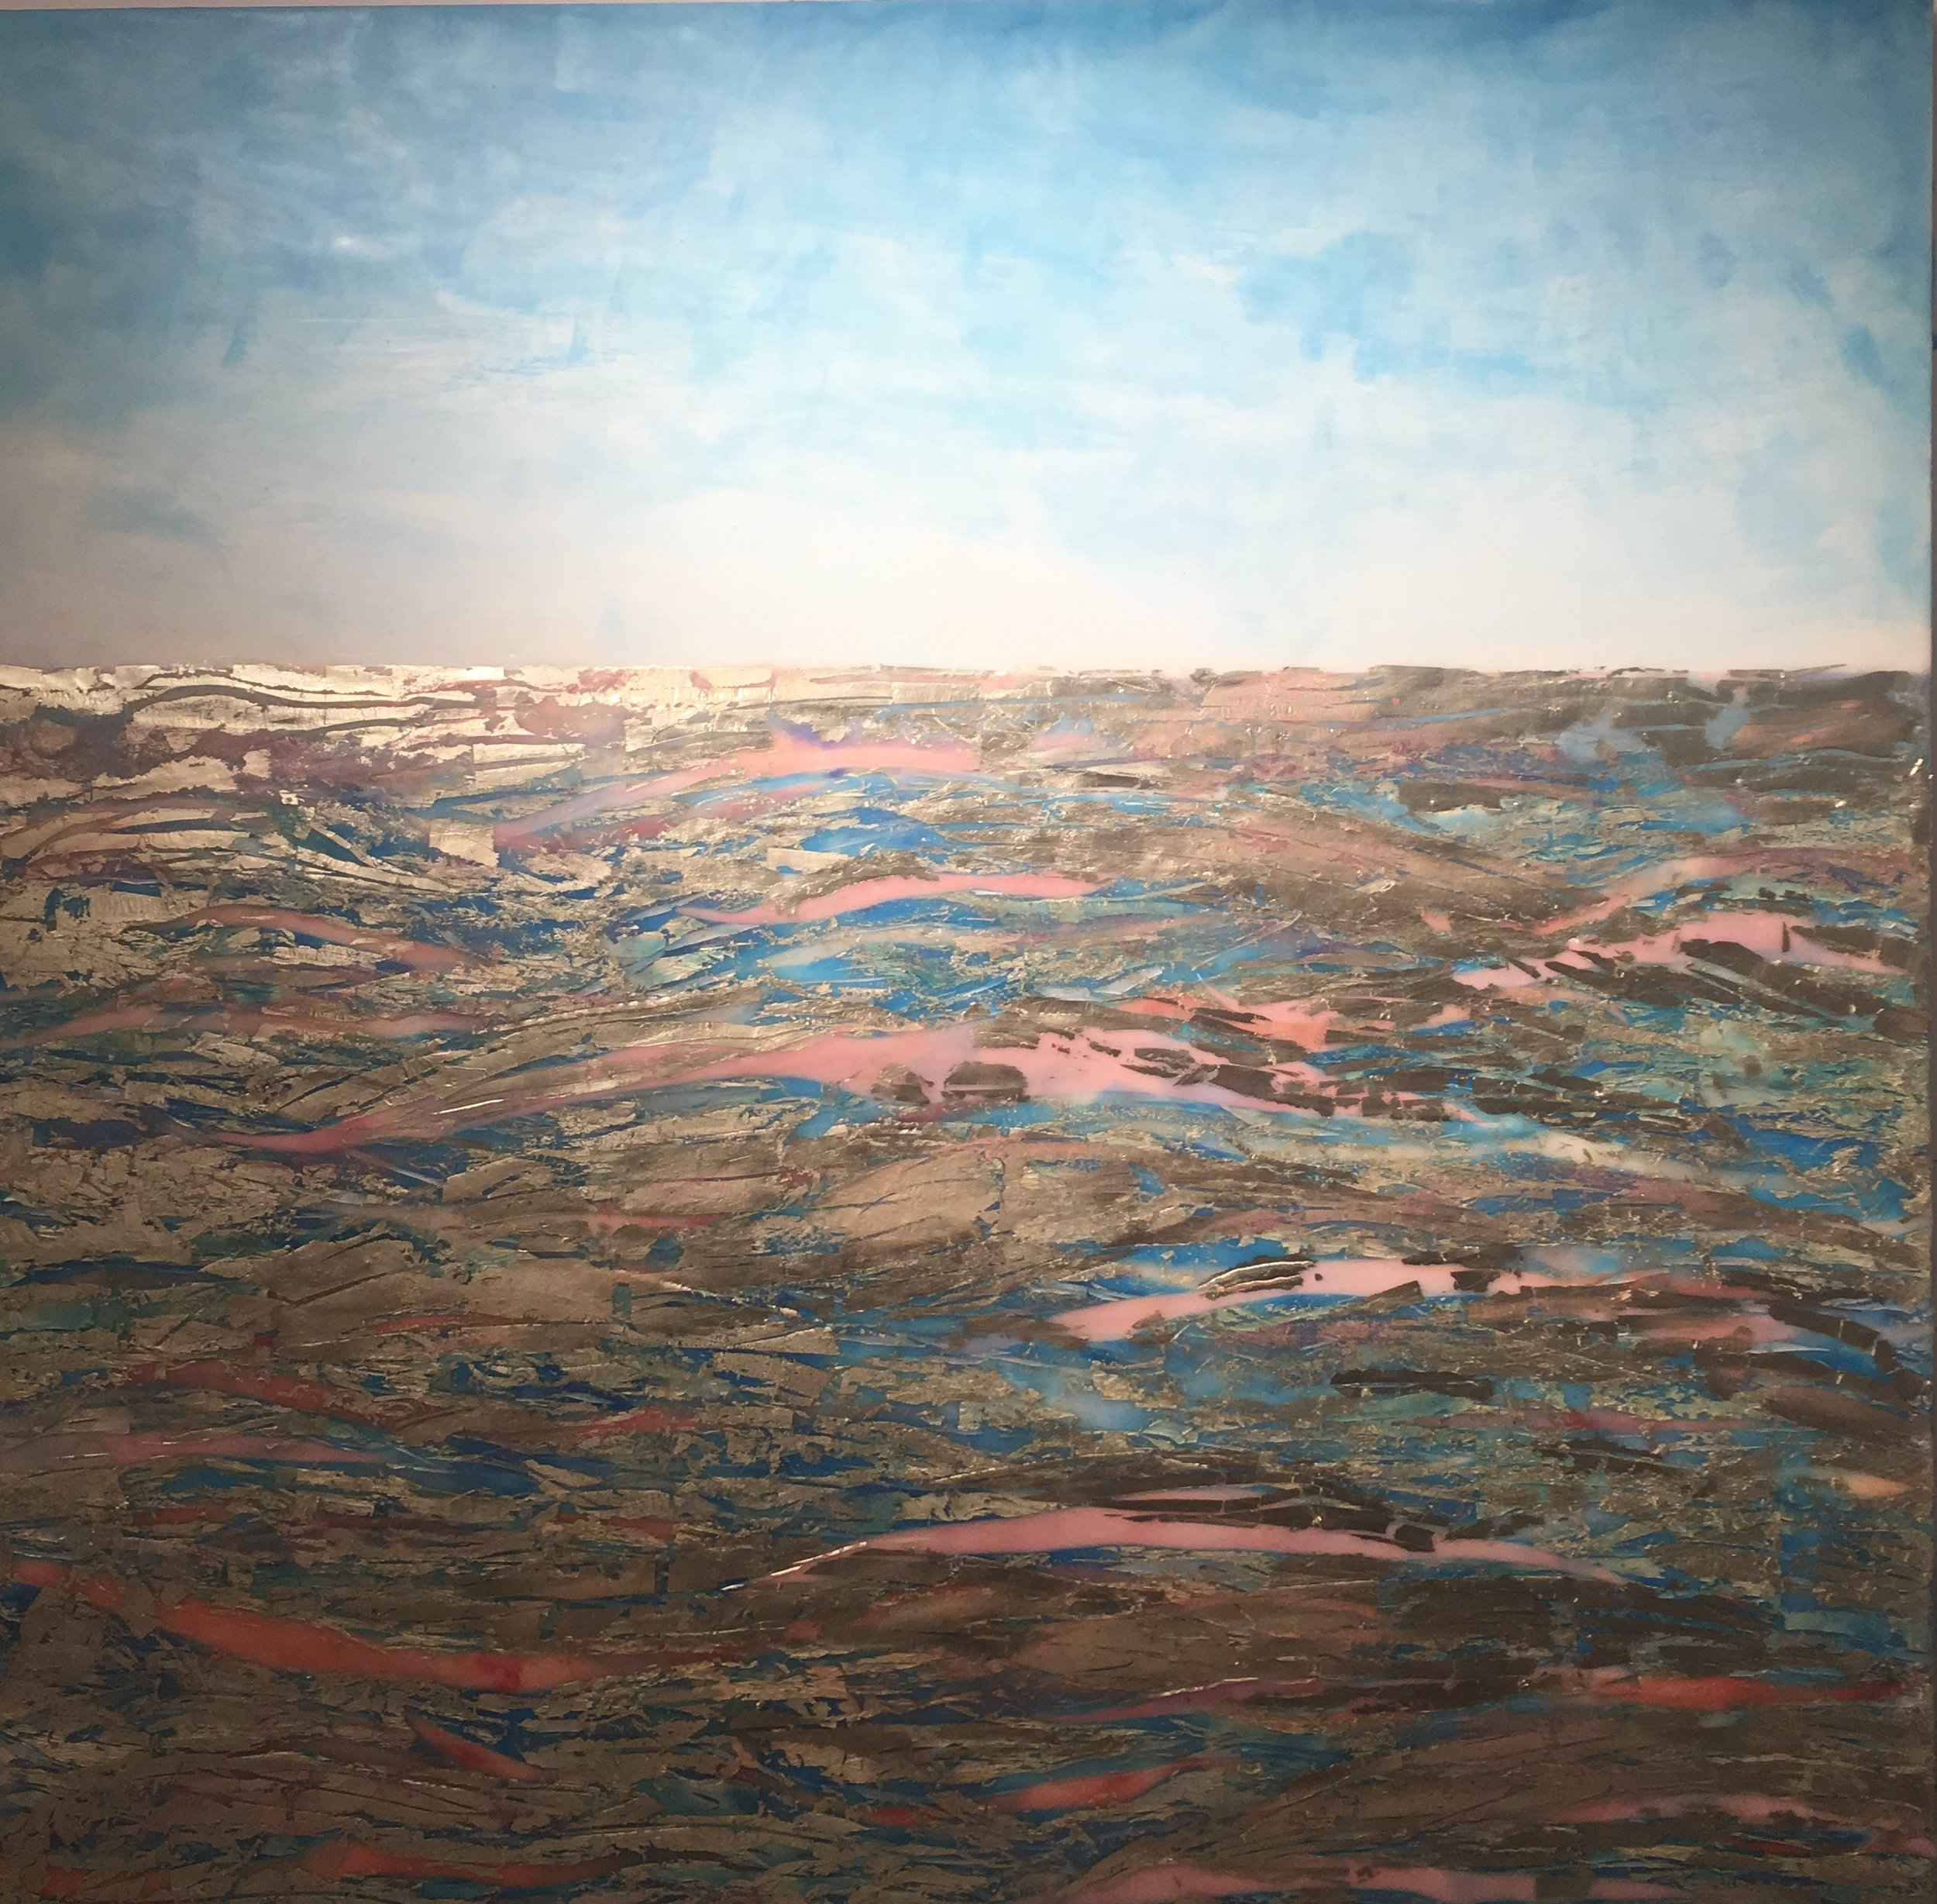 "🌊 of ❤️ Sea of Love by Maggie Simonelli Encaustic, 16 kt pale gold leaf, Japanese coral, Japanese Iwamomo pink glass, Chinese cinnabar, CHANEL 96 Utopia eyeshadow, CHANEL 847 Envol eye shadow, pigments, acrylic under painting, and sea water on birch panel 36"" x 36"" x 1 3/4"""